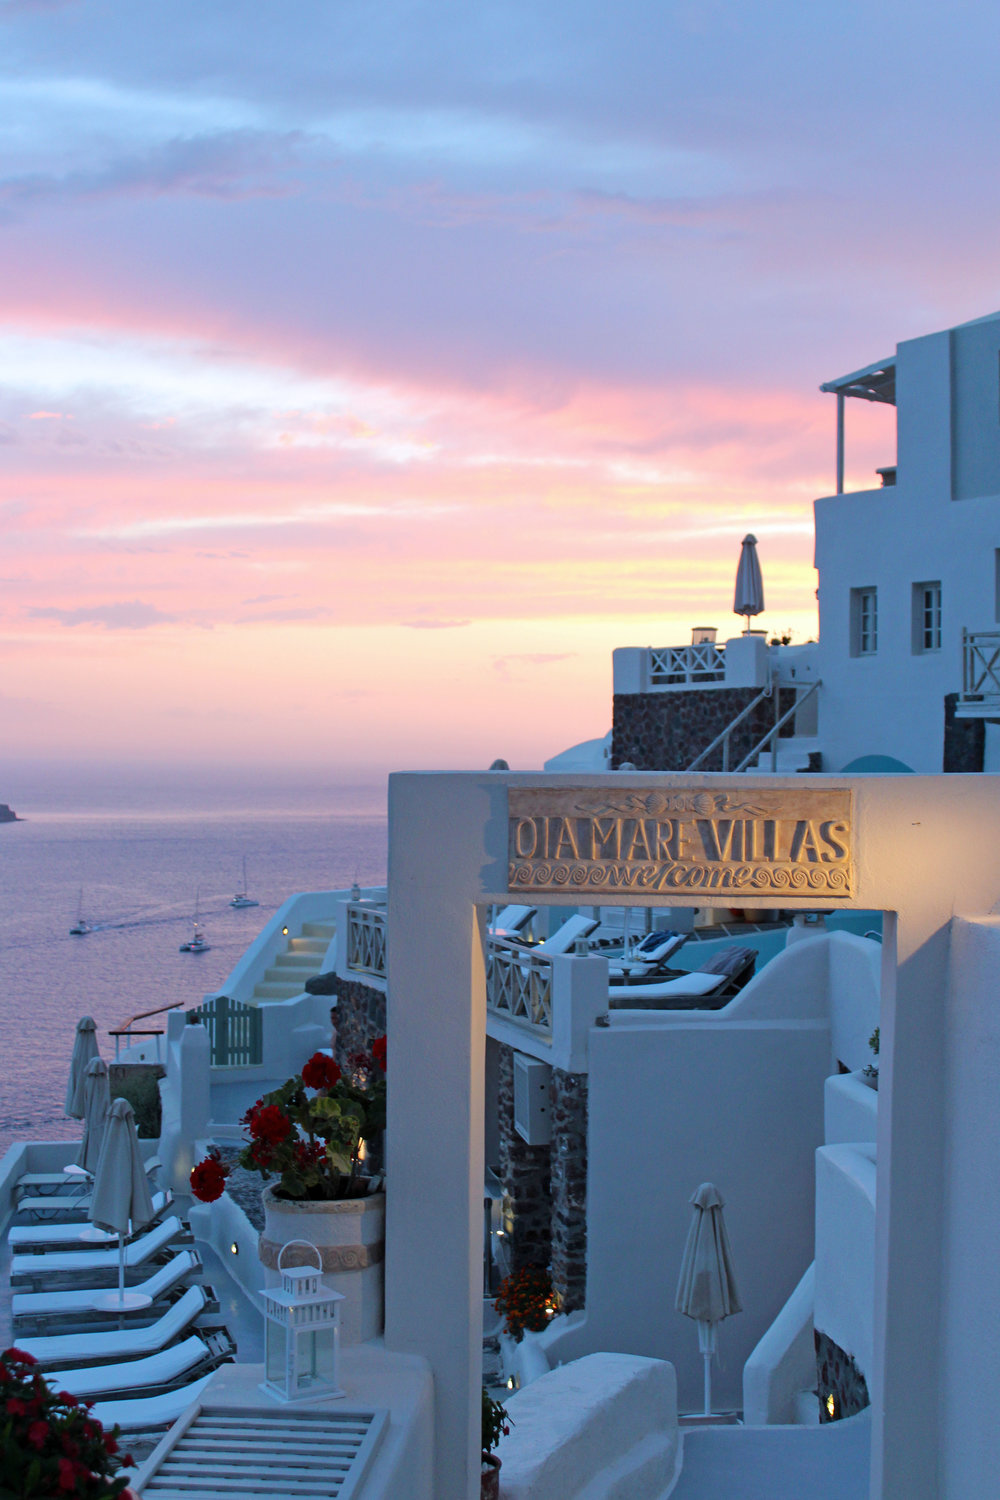 location is key... - Located at the furthest tip of Oia, the most desired location for sunsets on Santorini, Oia Mare Villas proved to be a spectacular choice for a personal view of lil' baby Jesus working his magic.